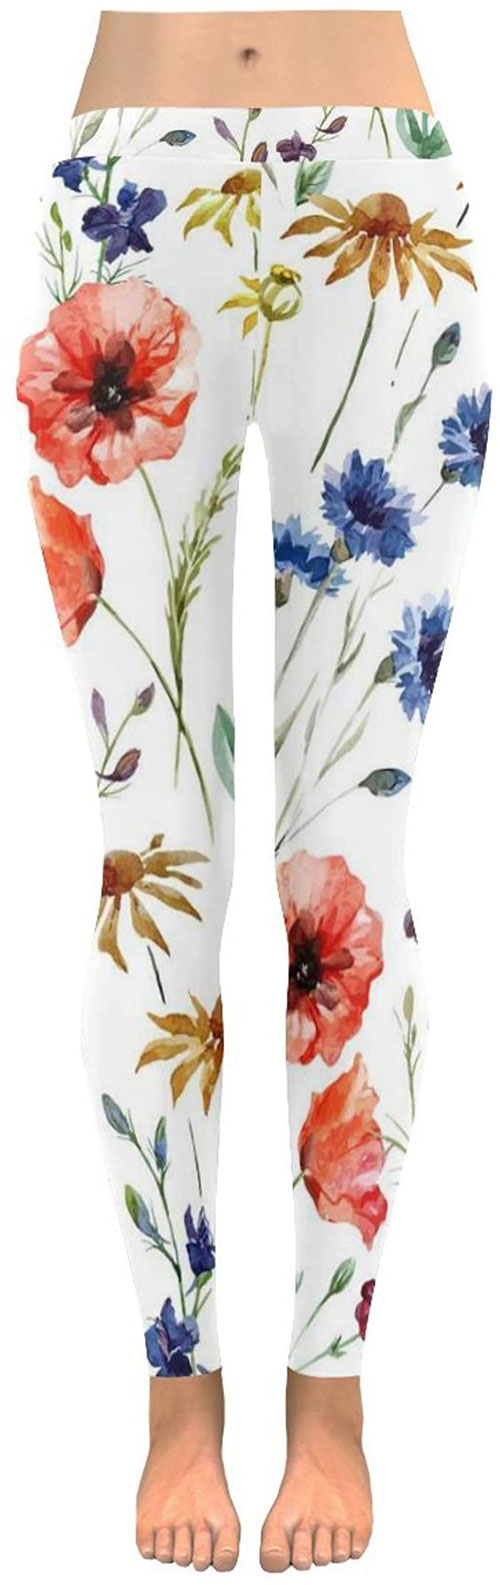 Floral-Print-Pants-For-Girls-Women-2020-Spring-Fashion-6